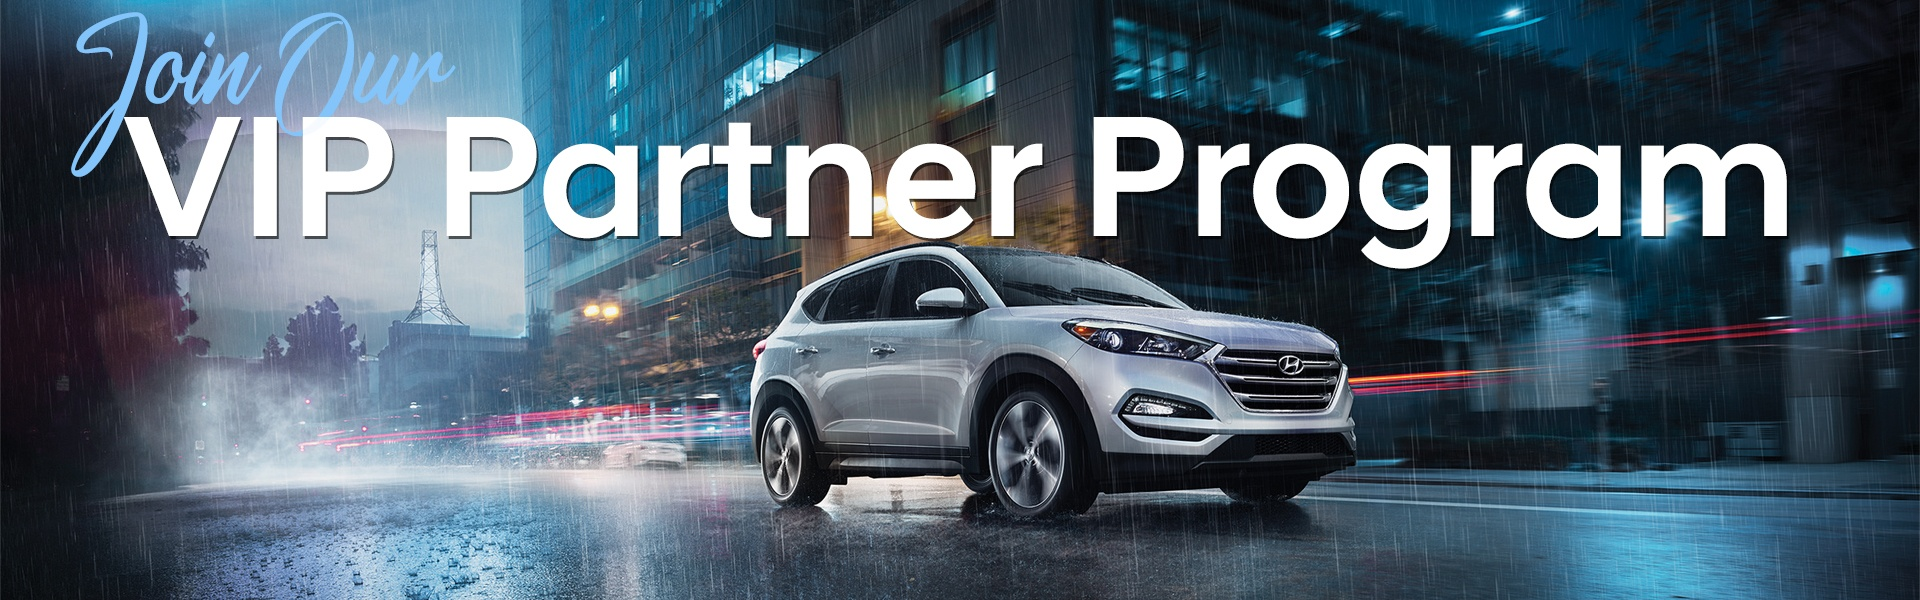 Ontario Hyundai VIP Partner Program